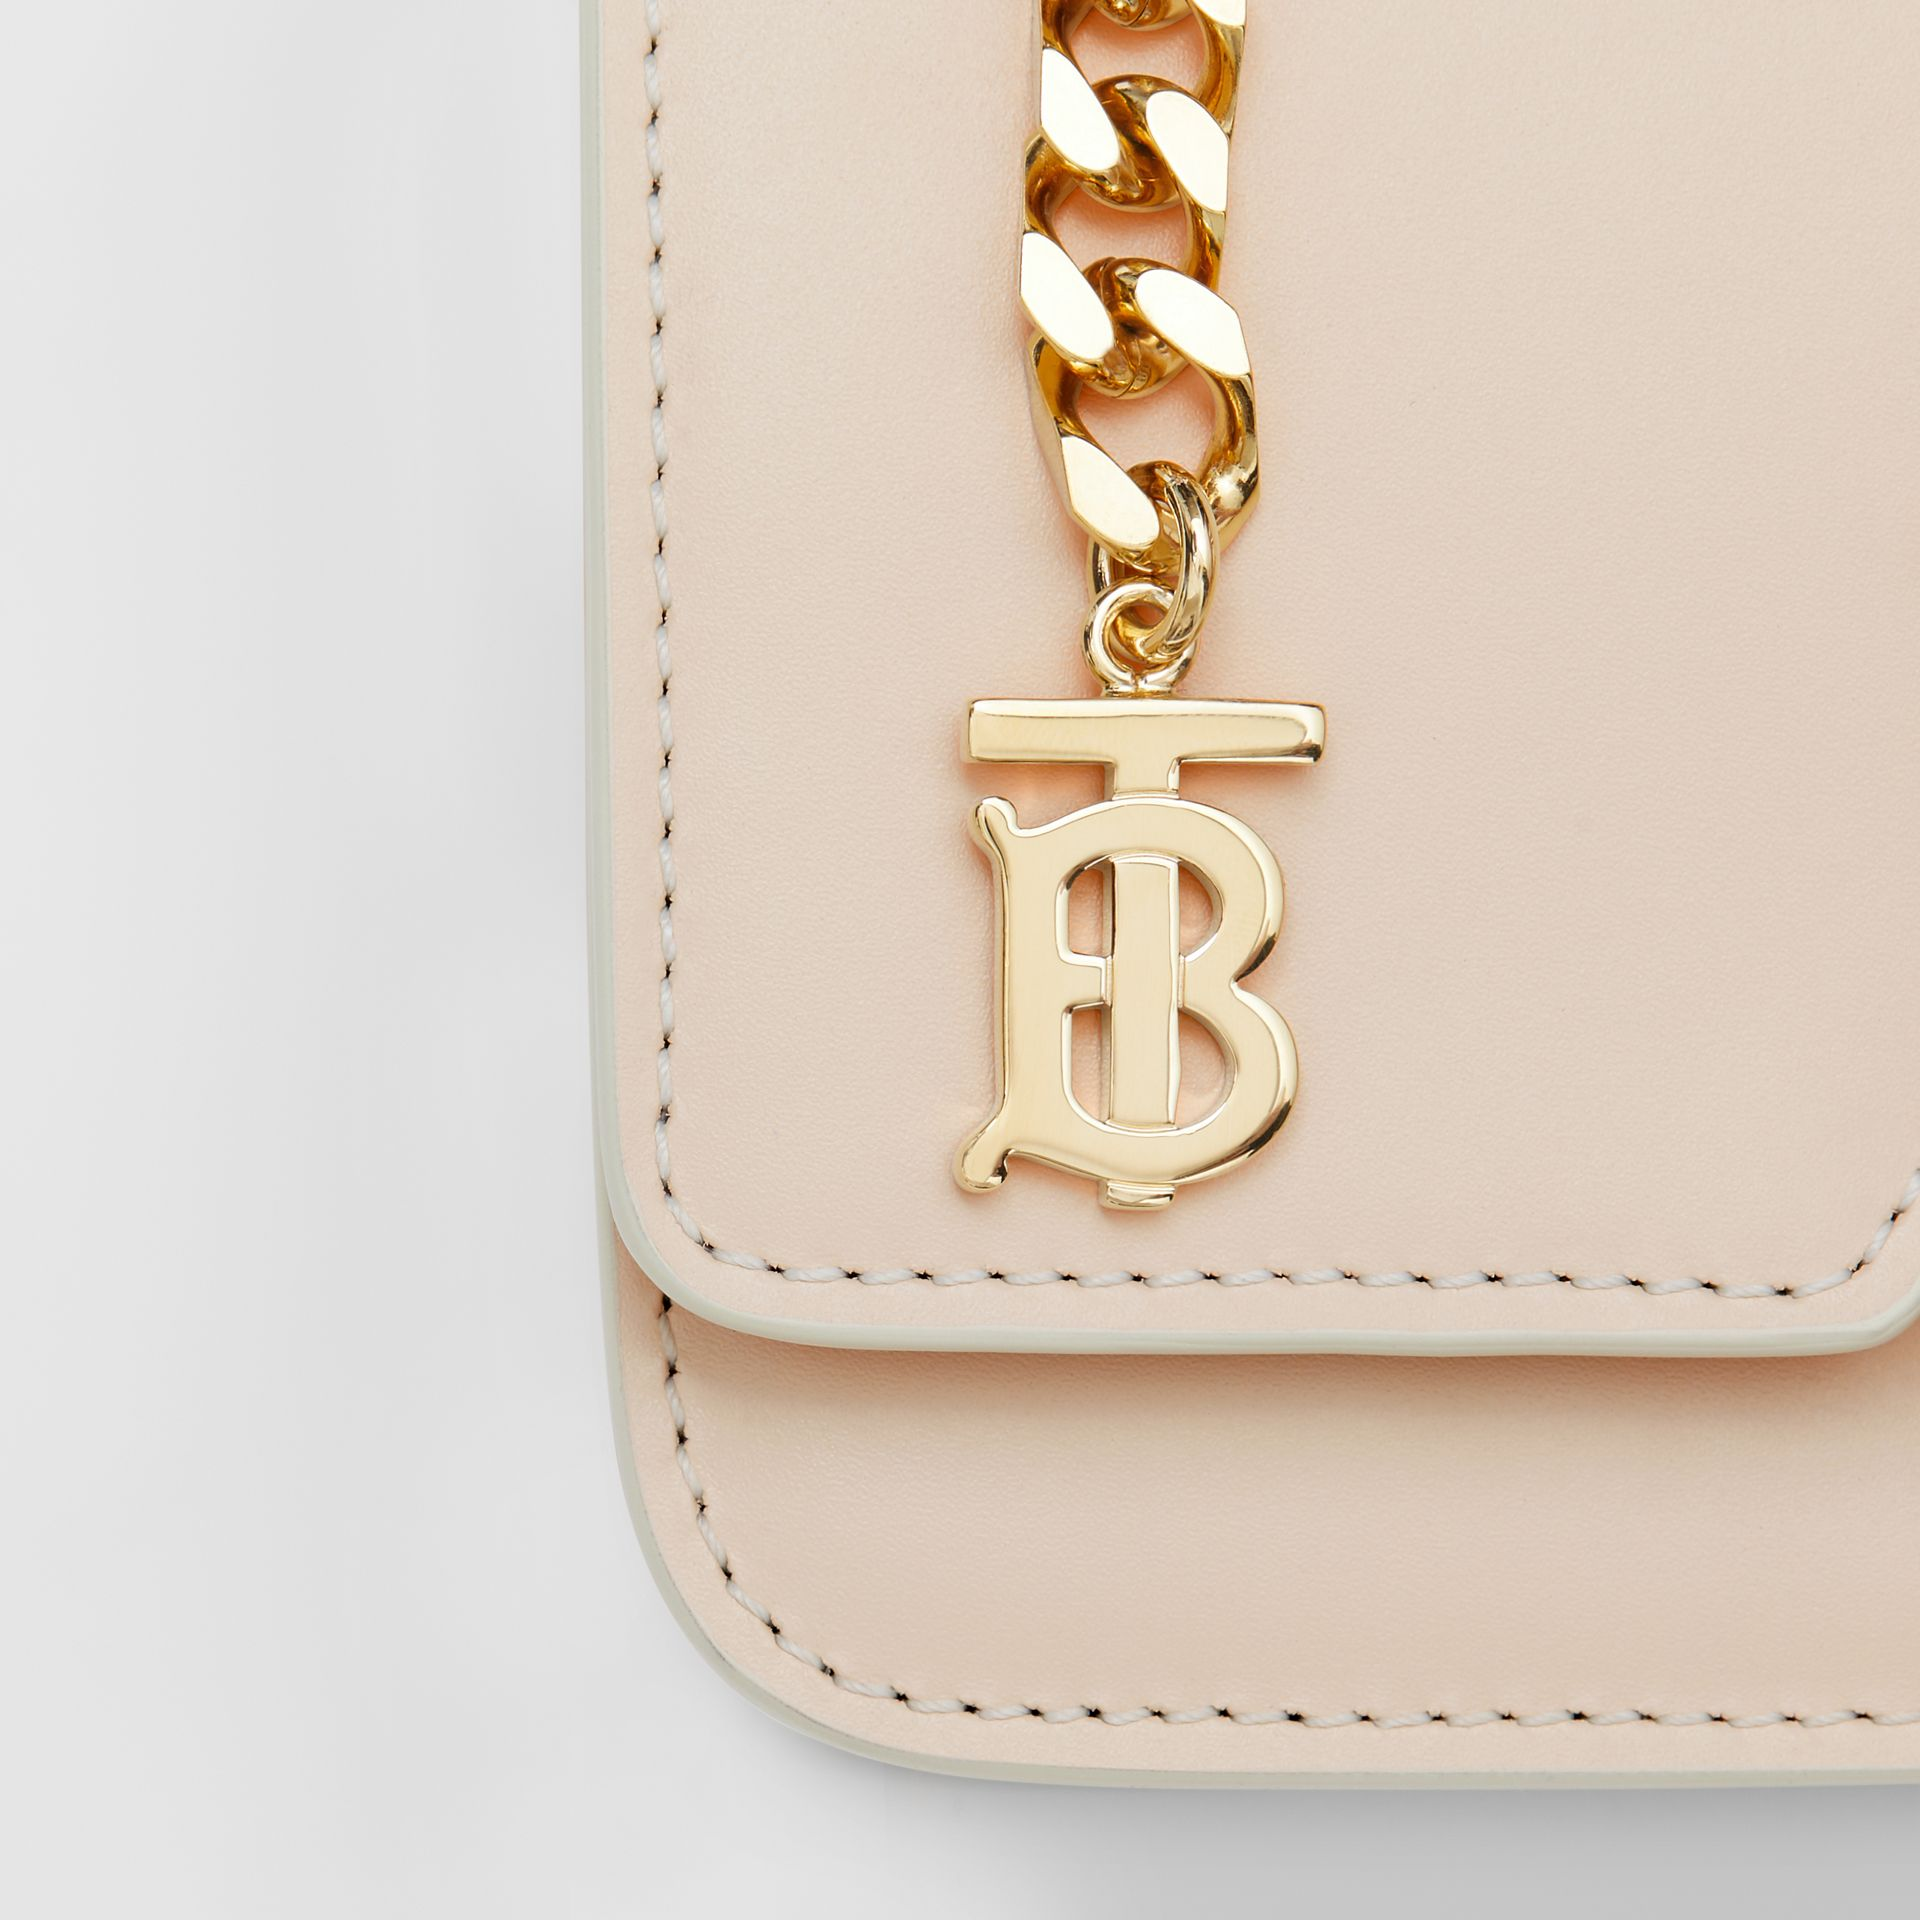 Belted Leather TB Bag in Vanilla - Women | Burberry Australia - gallery image 1